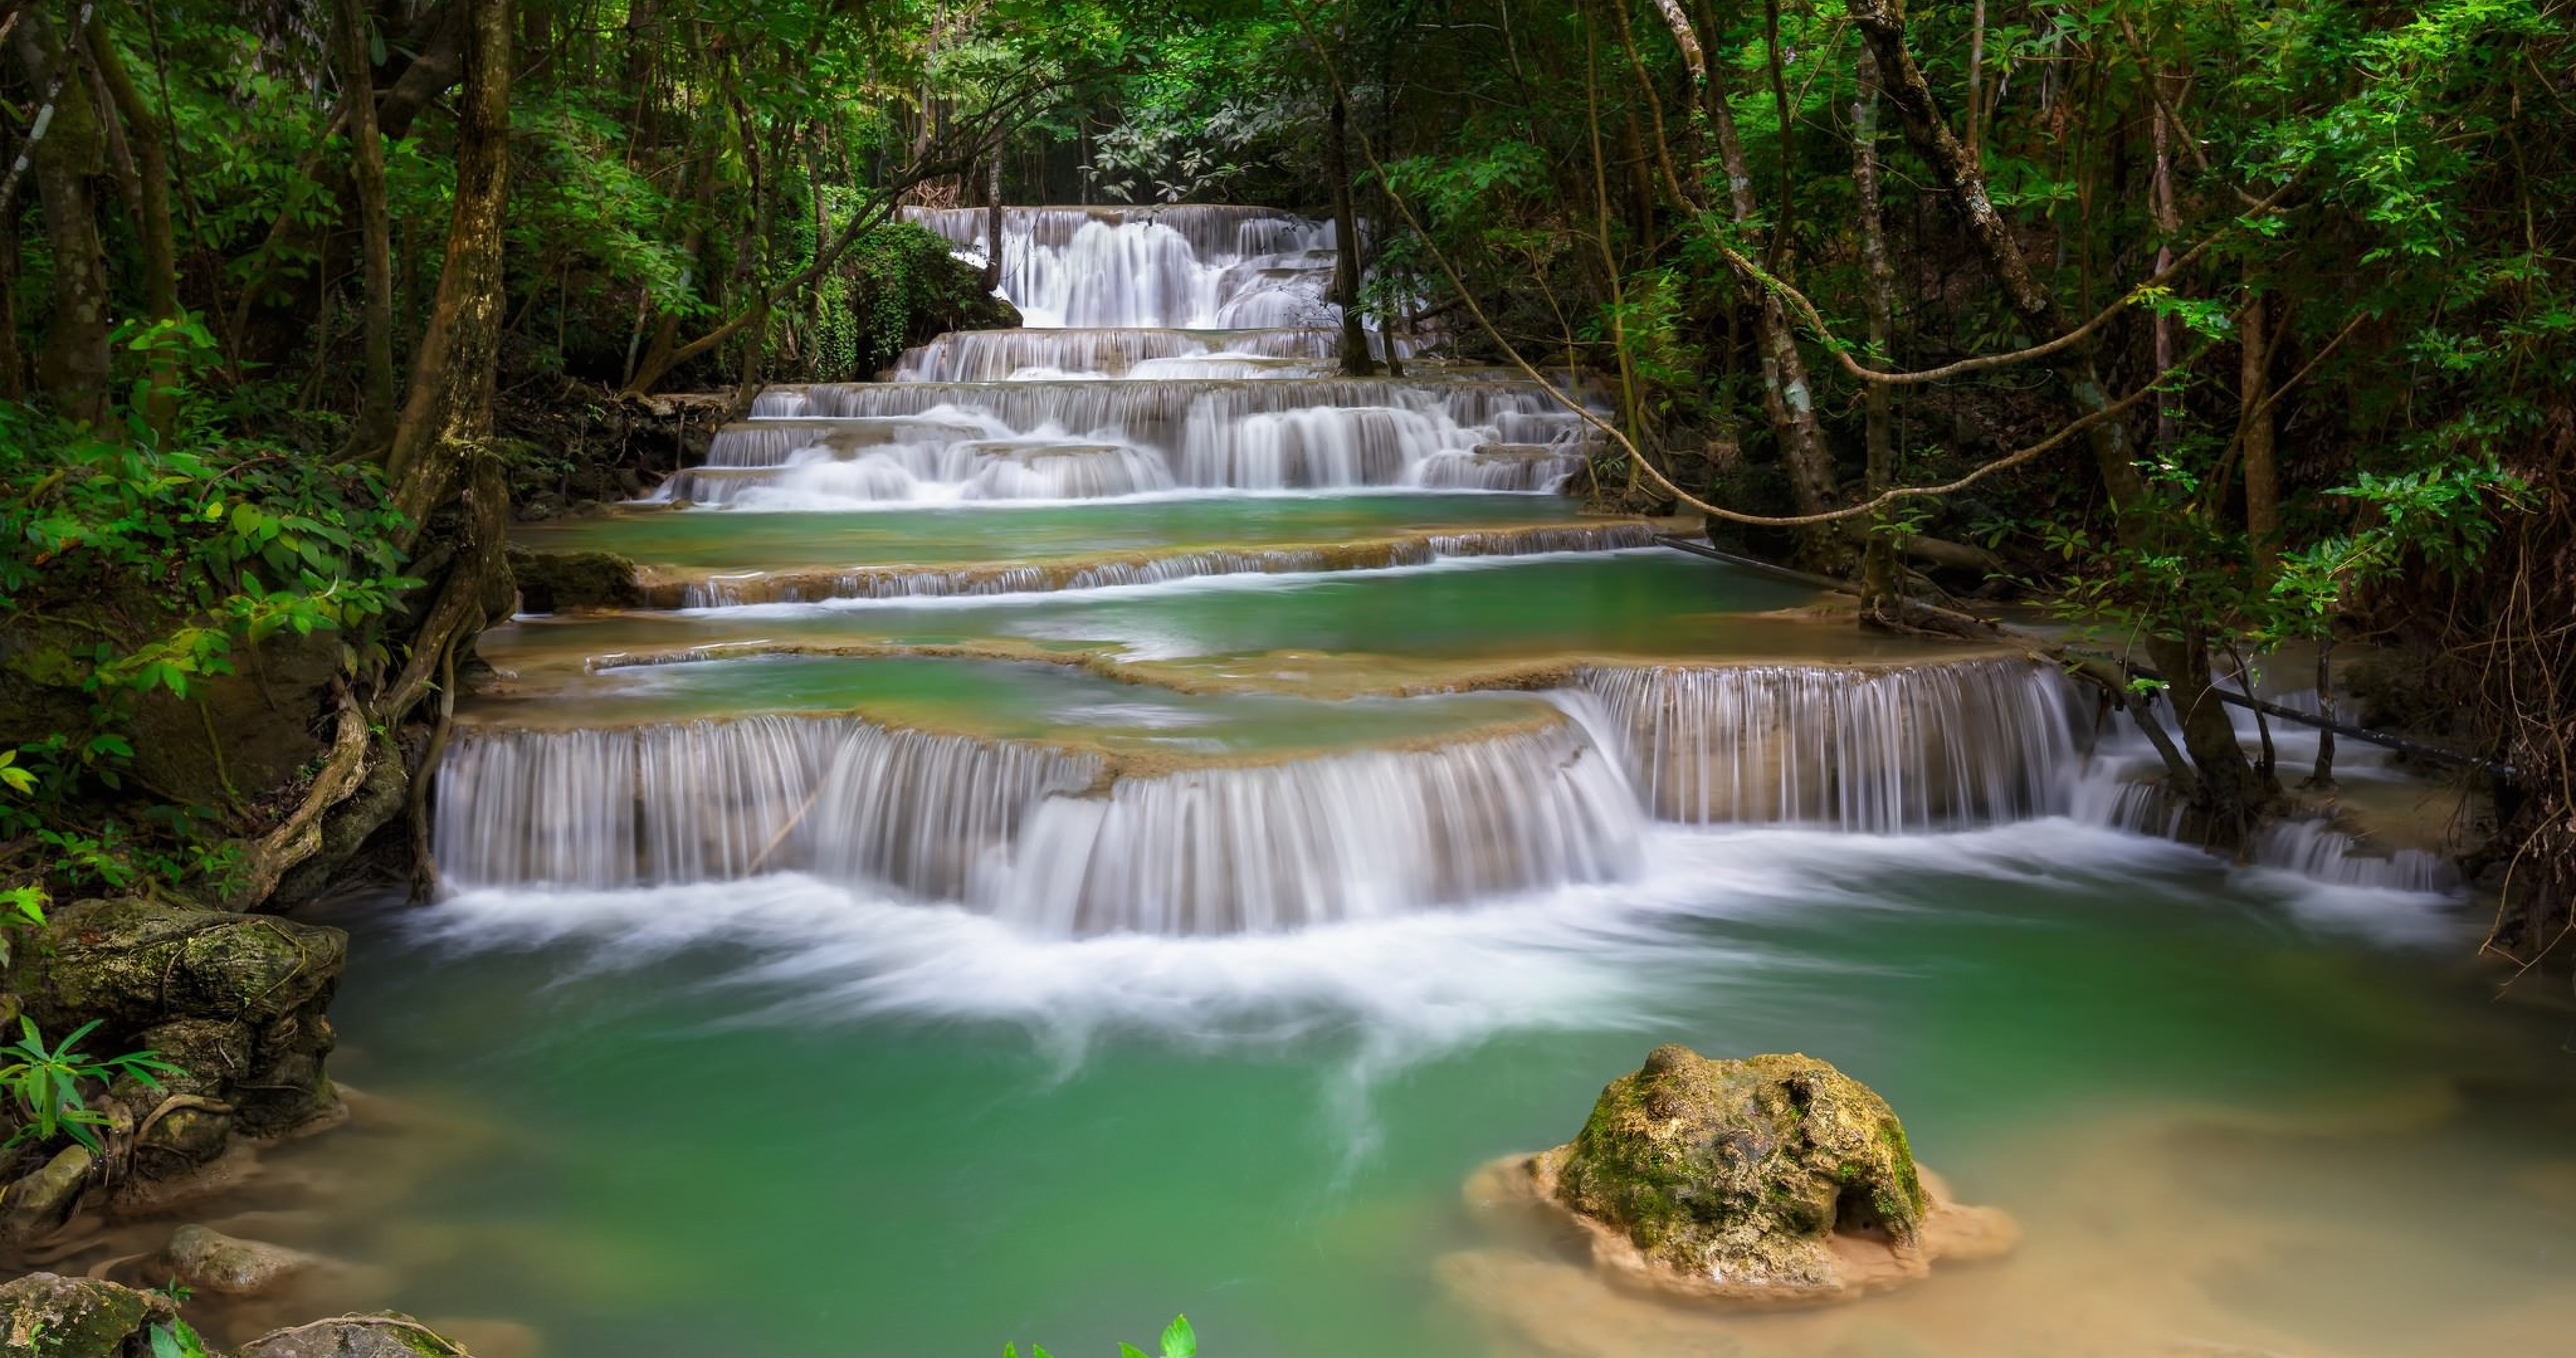 colorful waterfall in nature 4k ultra hd wallpaper » High ... - photo#37